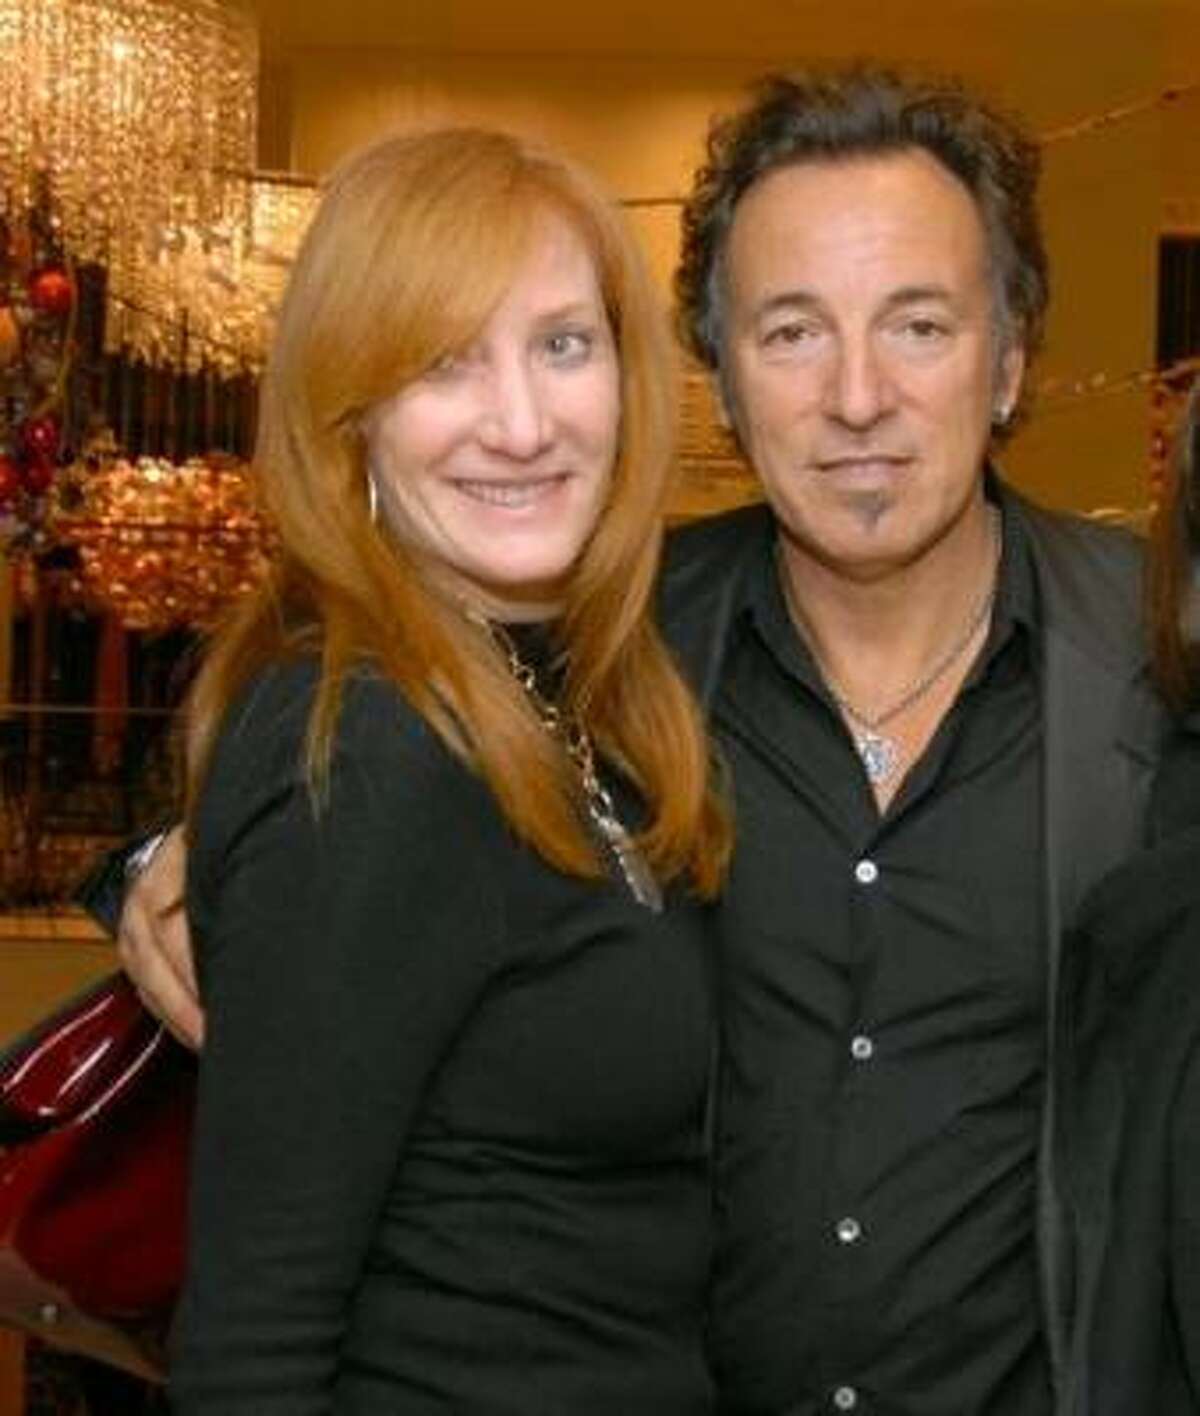 Bruce Springsteen 's three year marriage to Julianne Phillips ended after pictures surfaced of The Boss and E Street band member Patti Scialfa getting cozy on a hotel room balcony.